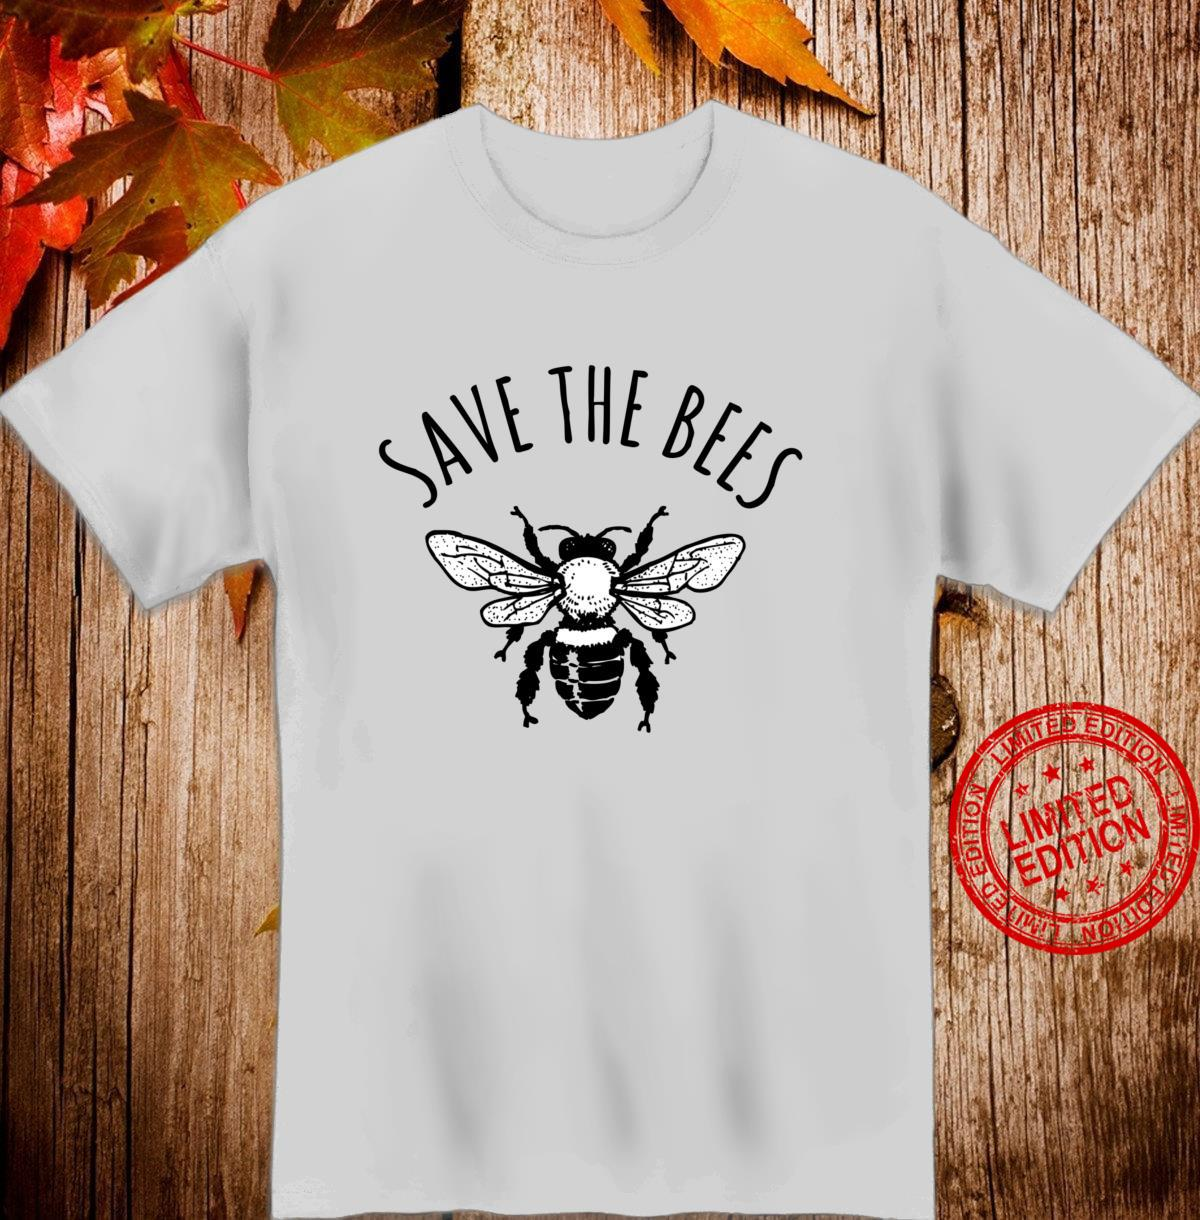 Bee Save the Bees, Shirt